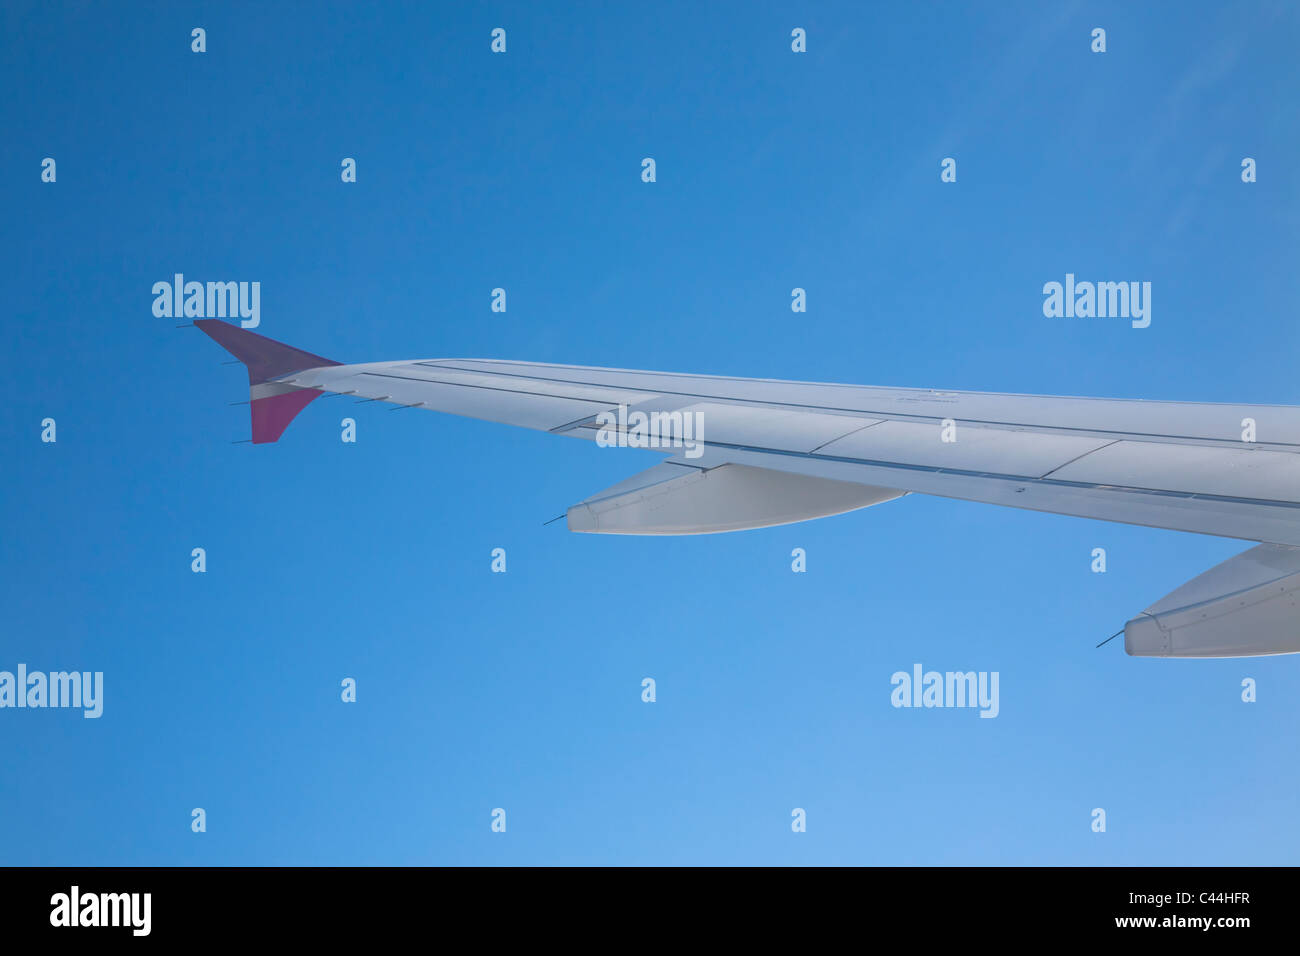 Airplane wing. TACA Airline - Stock Image